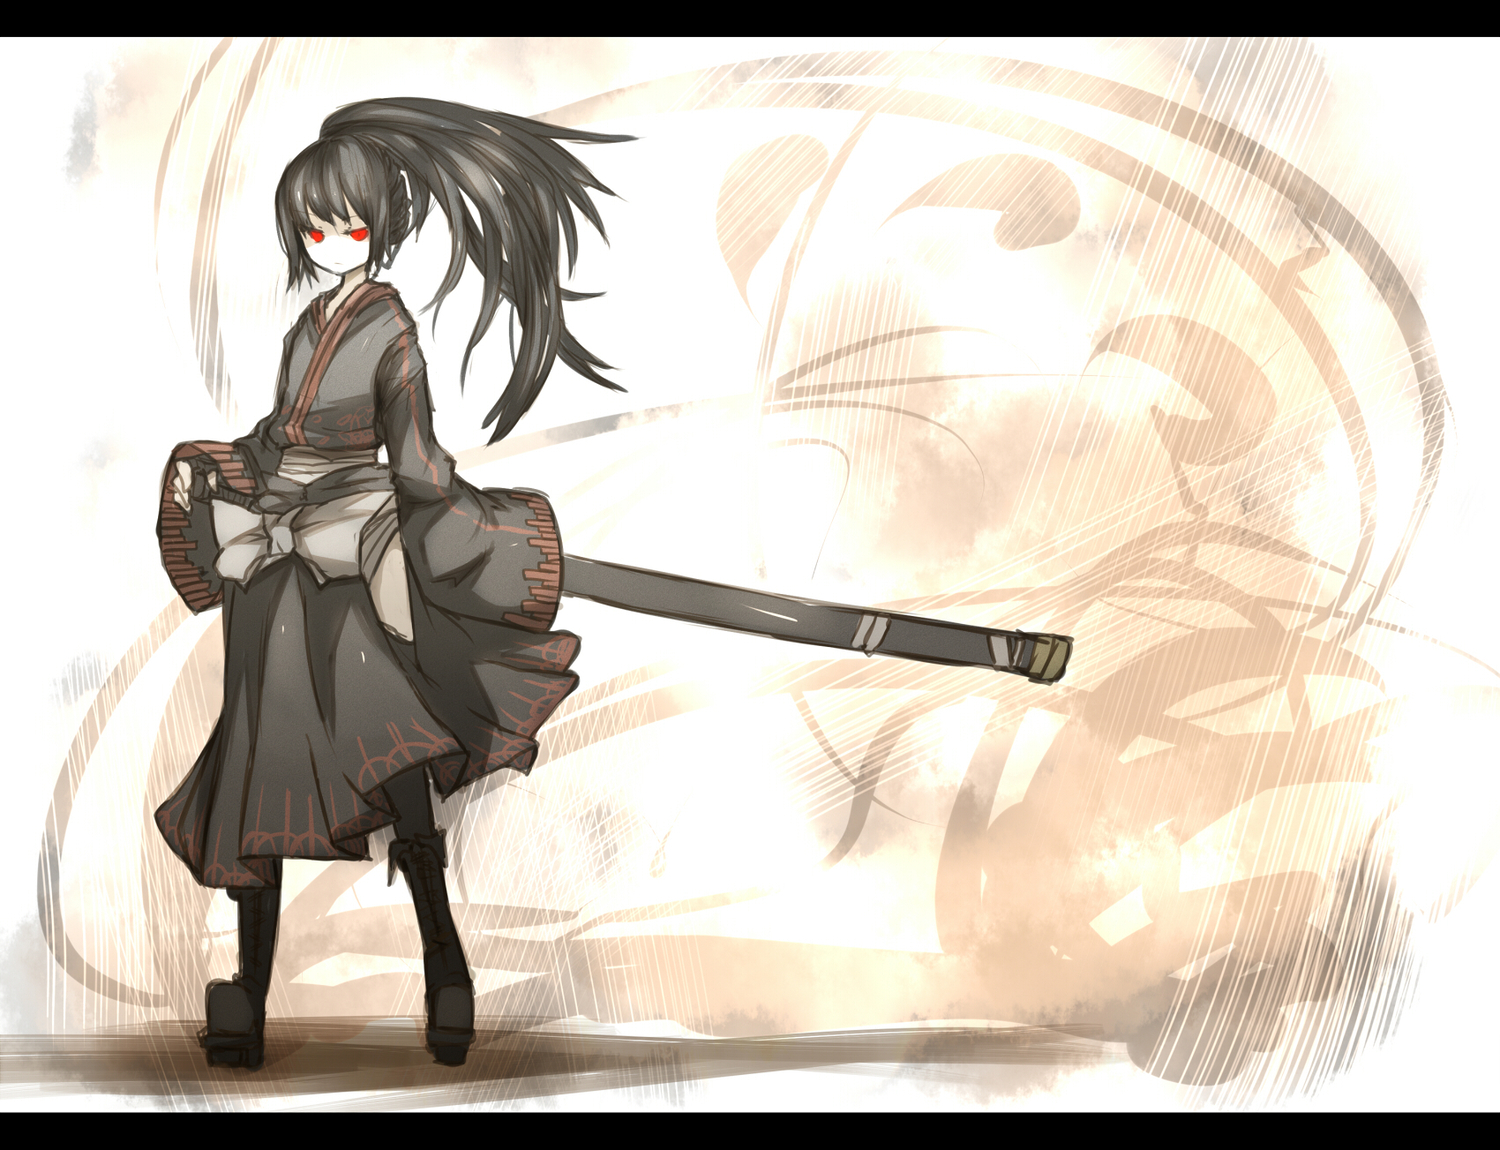 black_hair japanese_clothes katana kimono long_hair ponytail red_eyes shiroganeusagi sword weapon